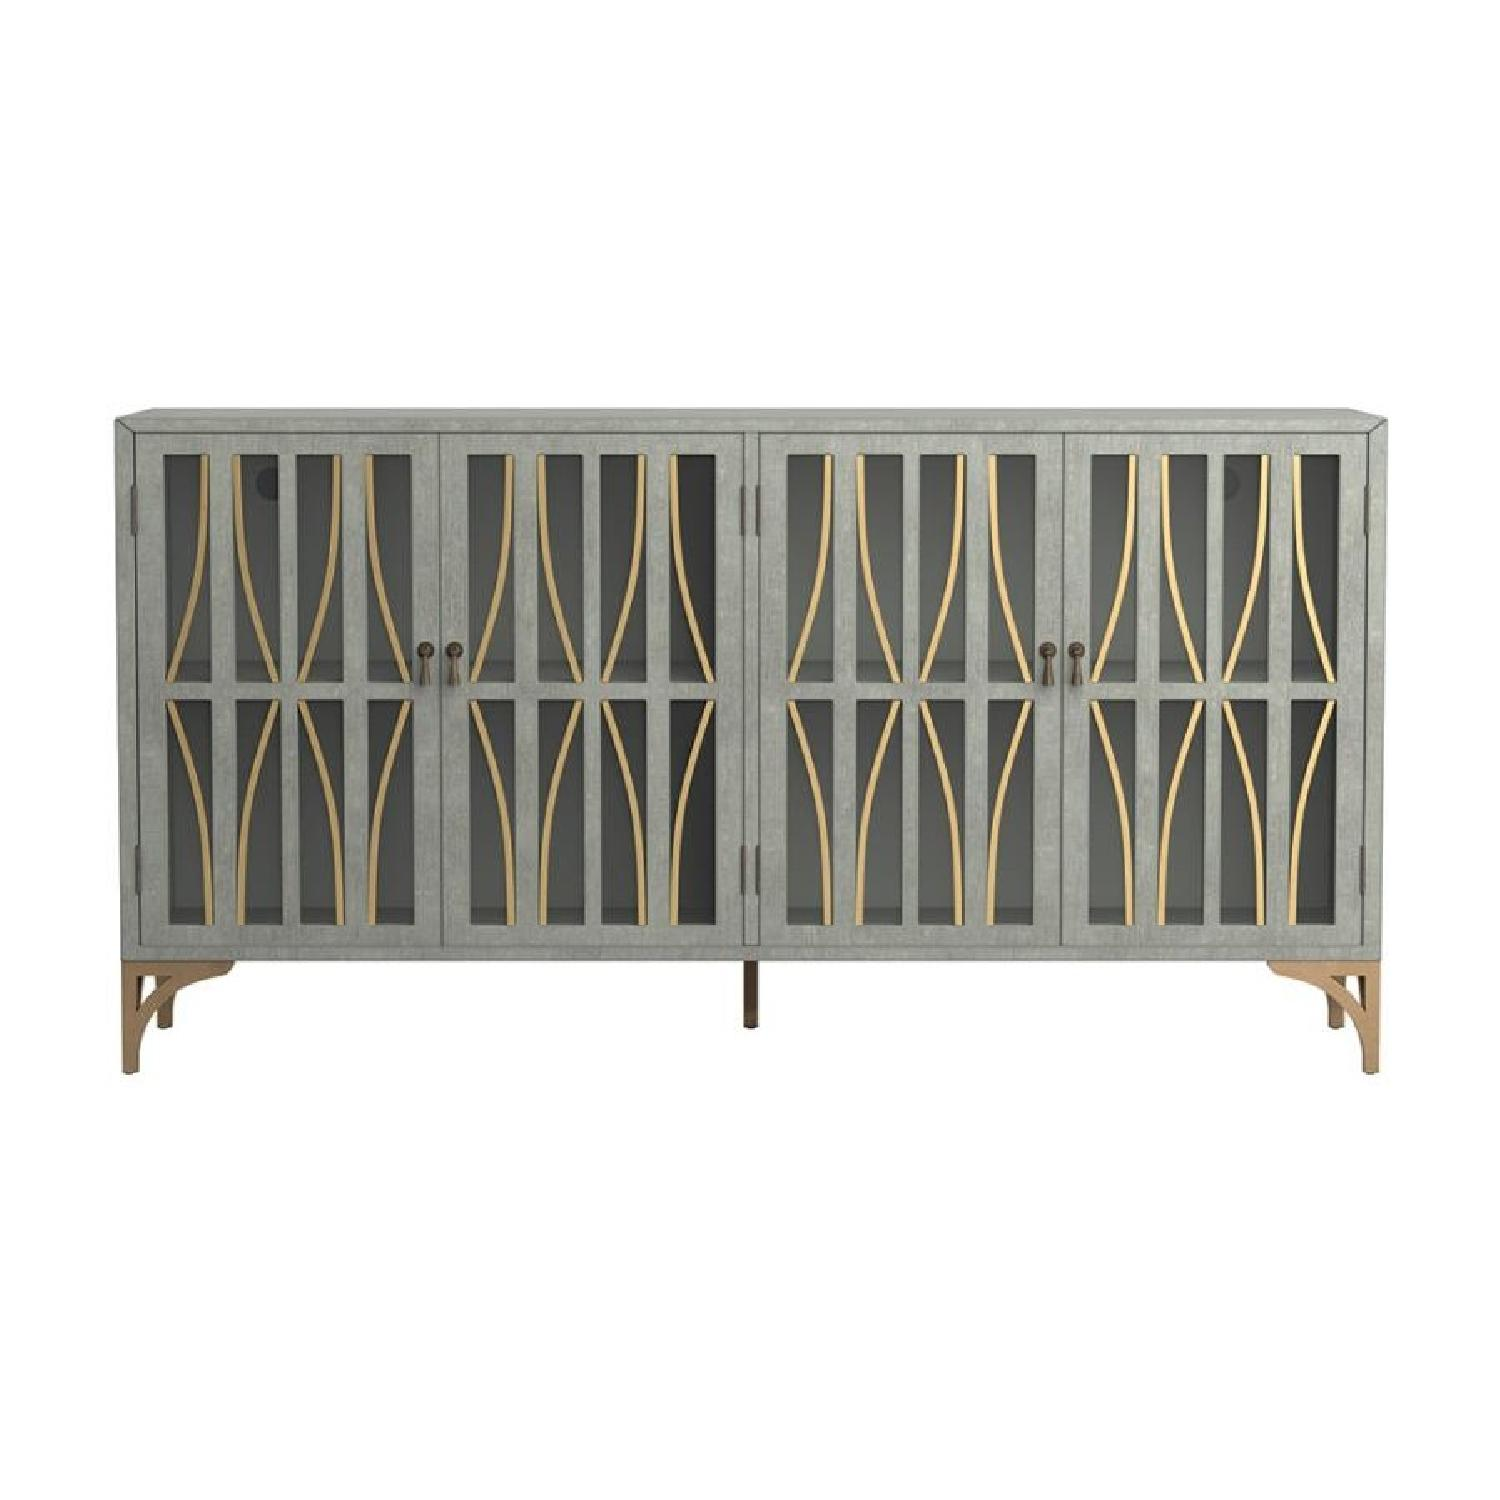 Contemporary Accent Cabinet In Grey Green w/ Bronze Hardware - image-2